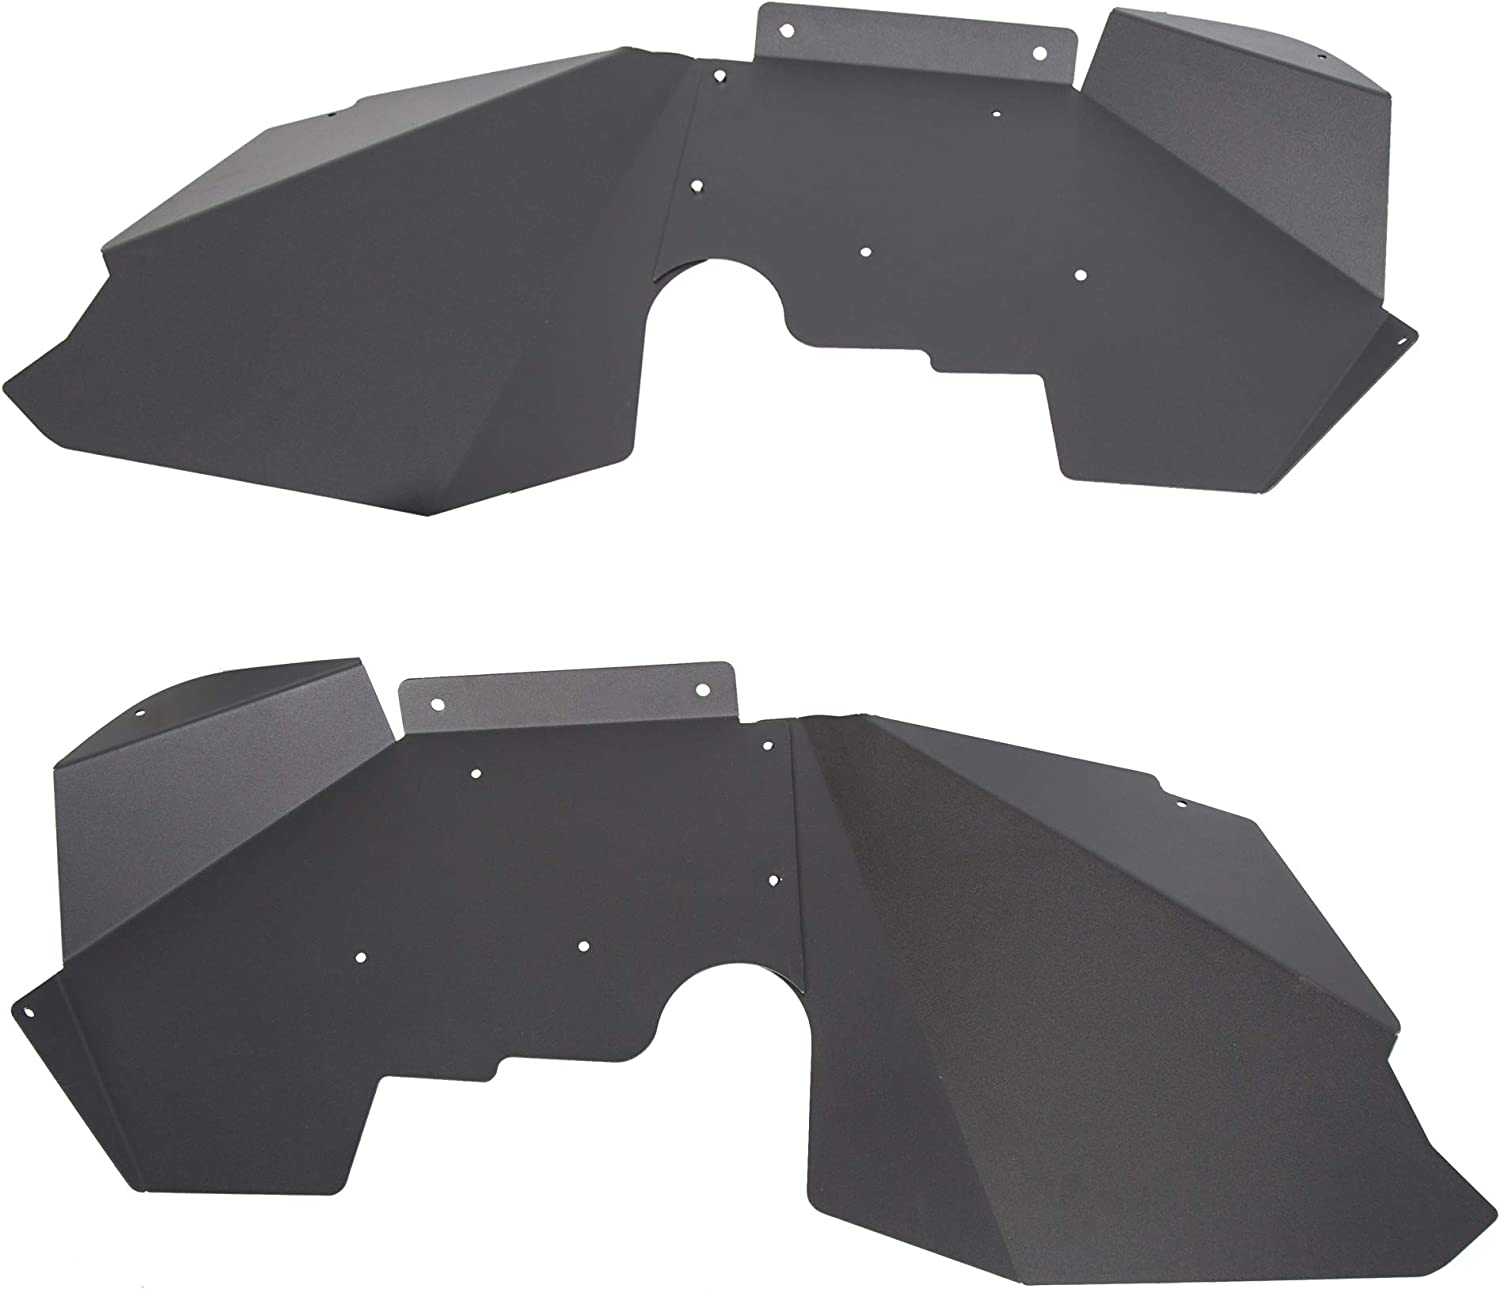 HECASA Aluminum Matte Black Heavy Duty Front Inner Fender Liners Compatible with 2007-2017 Jeep Wrangler JK 4WD